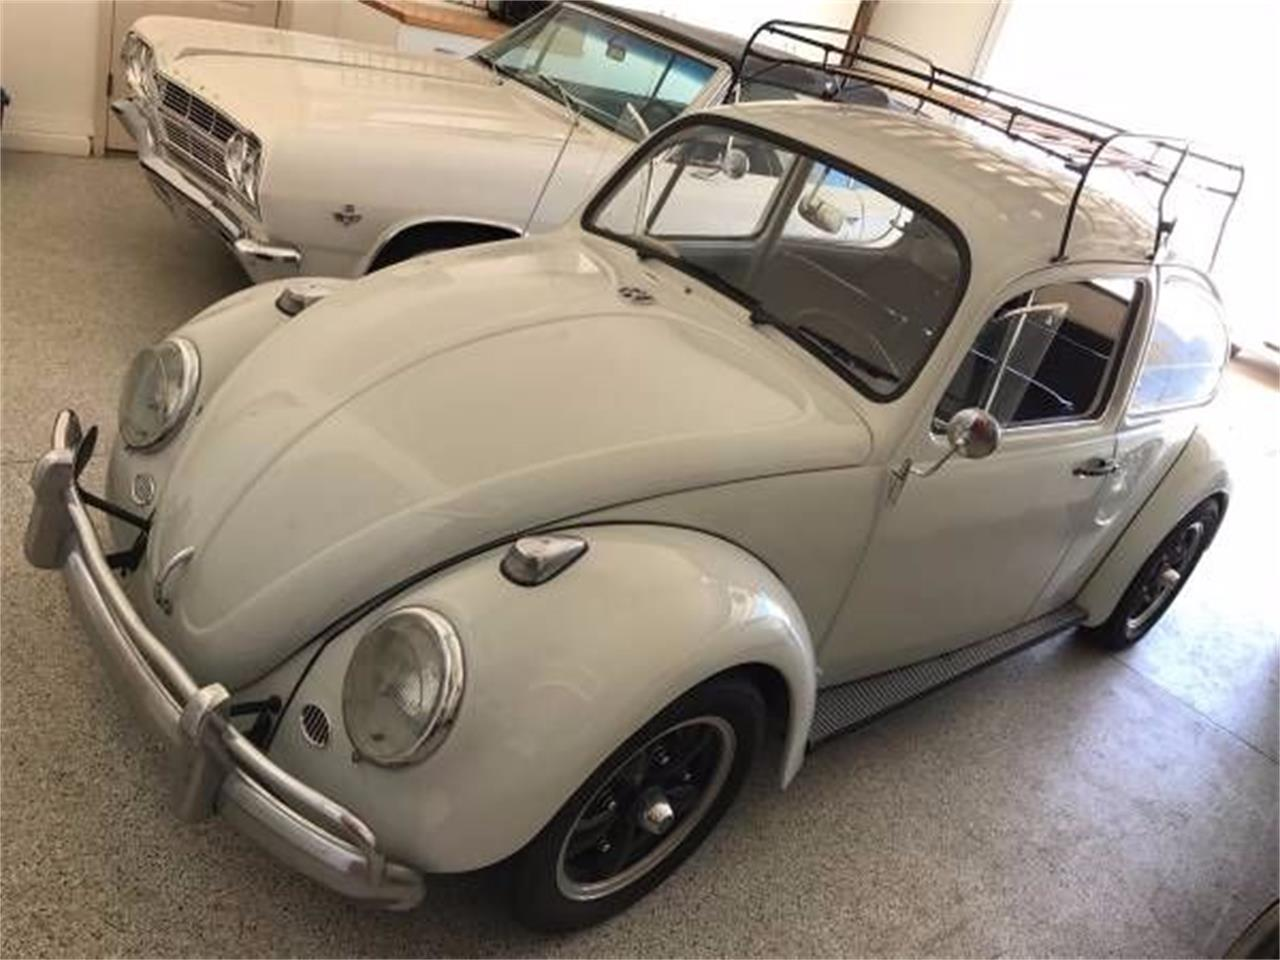 For Sale: 1965 Volkswagen Beetle in Cadillac, Michigan